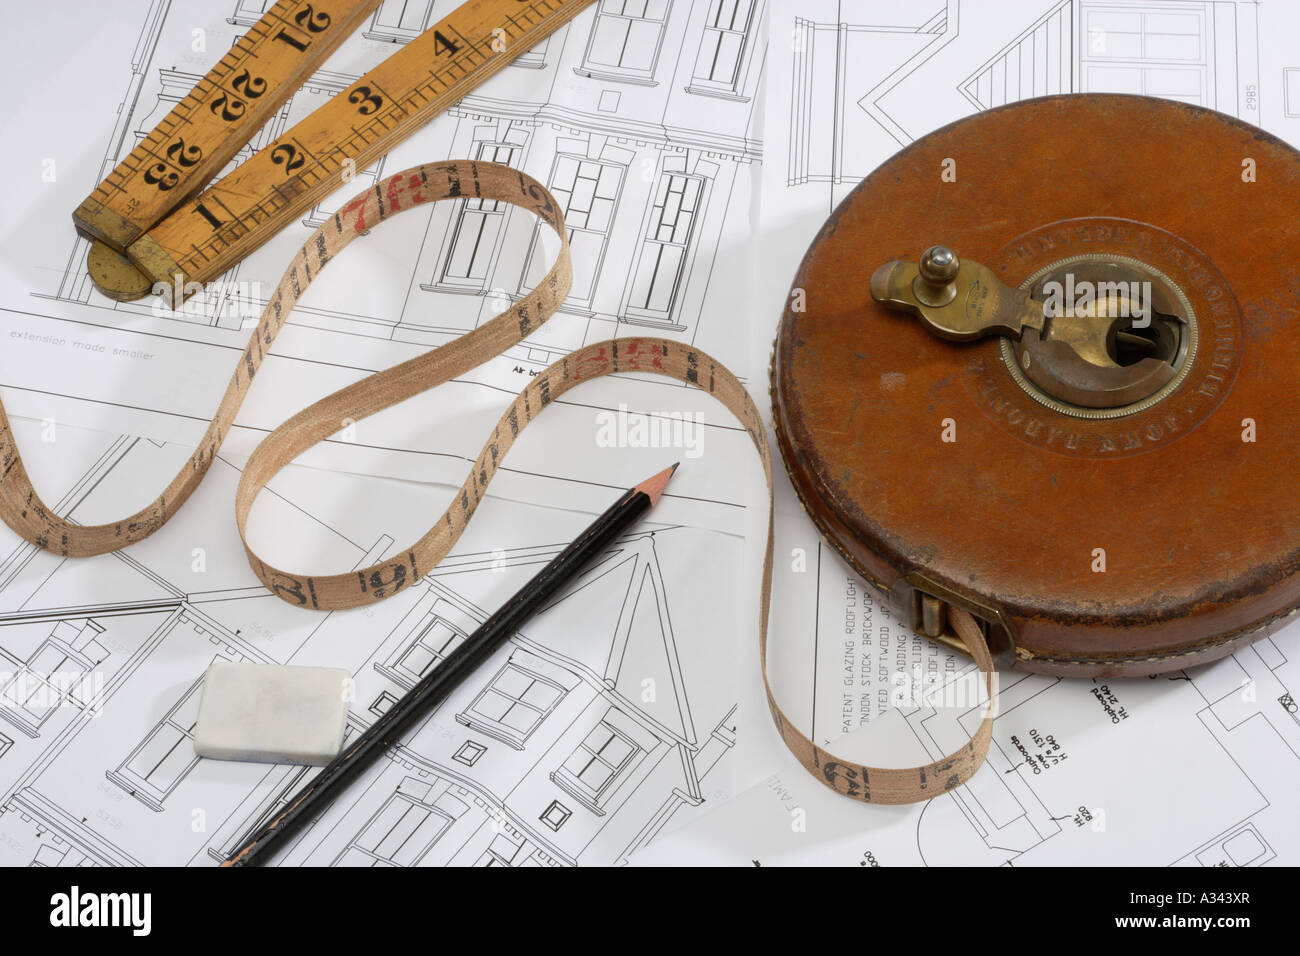 Tape measure and pencil on Architects technical drawings - Stock Image